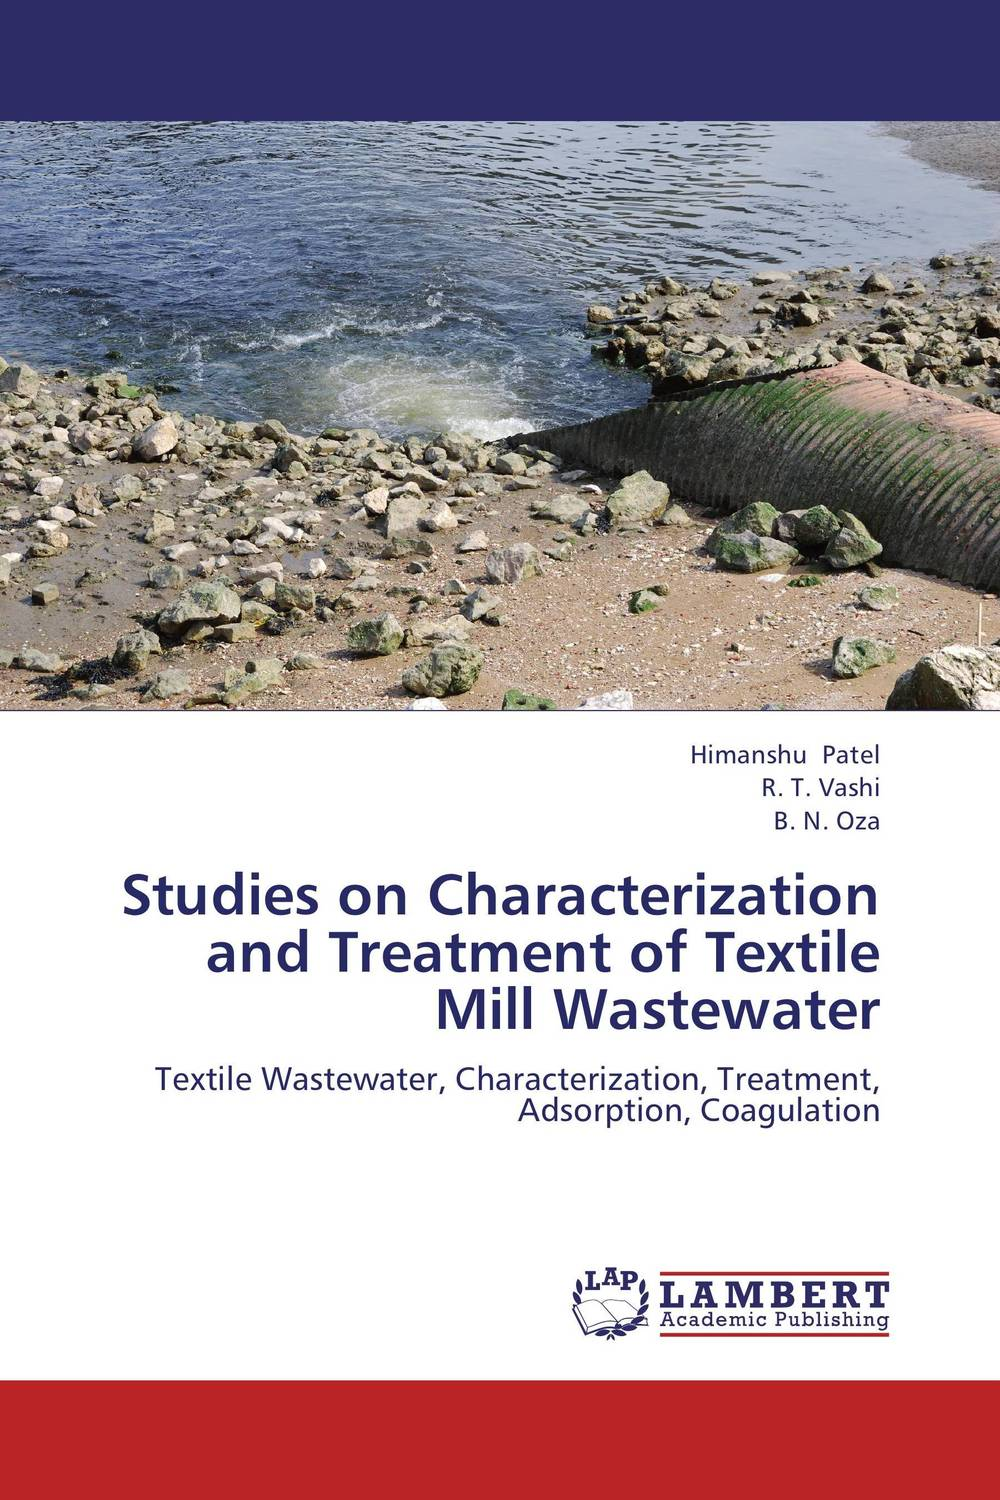 Studies on Characterization and Treatment of Textile Mill Wastewater chemical studies on toxic effects of cadmium